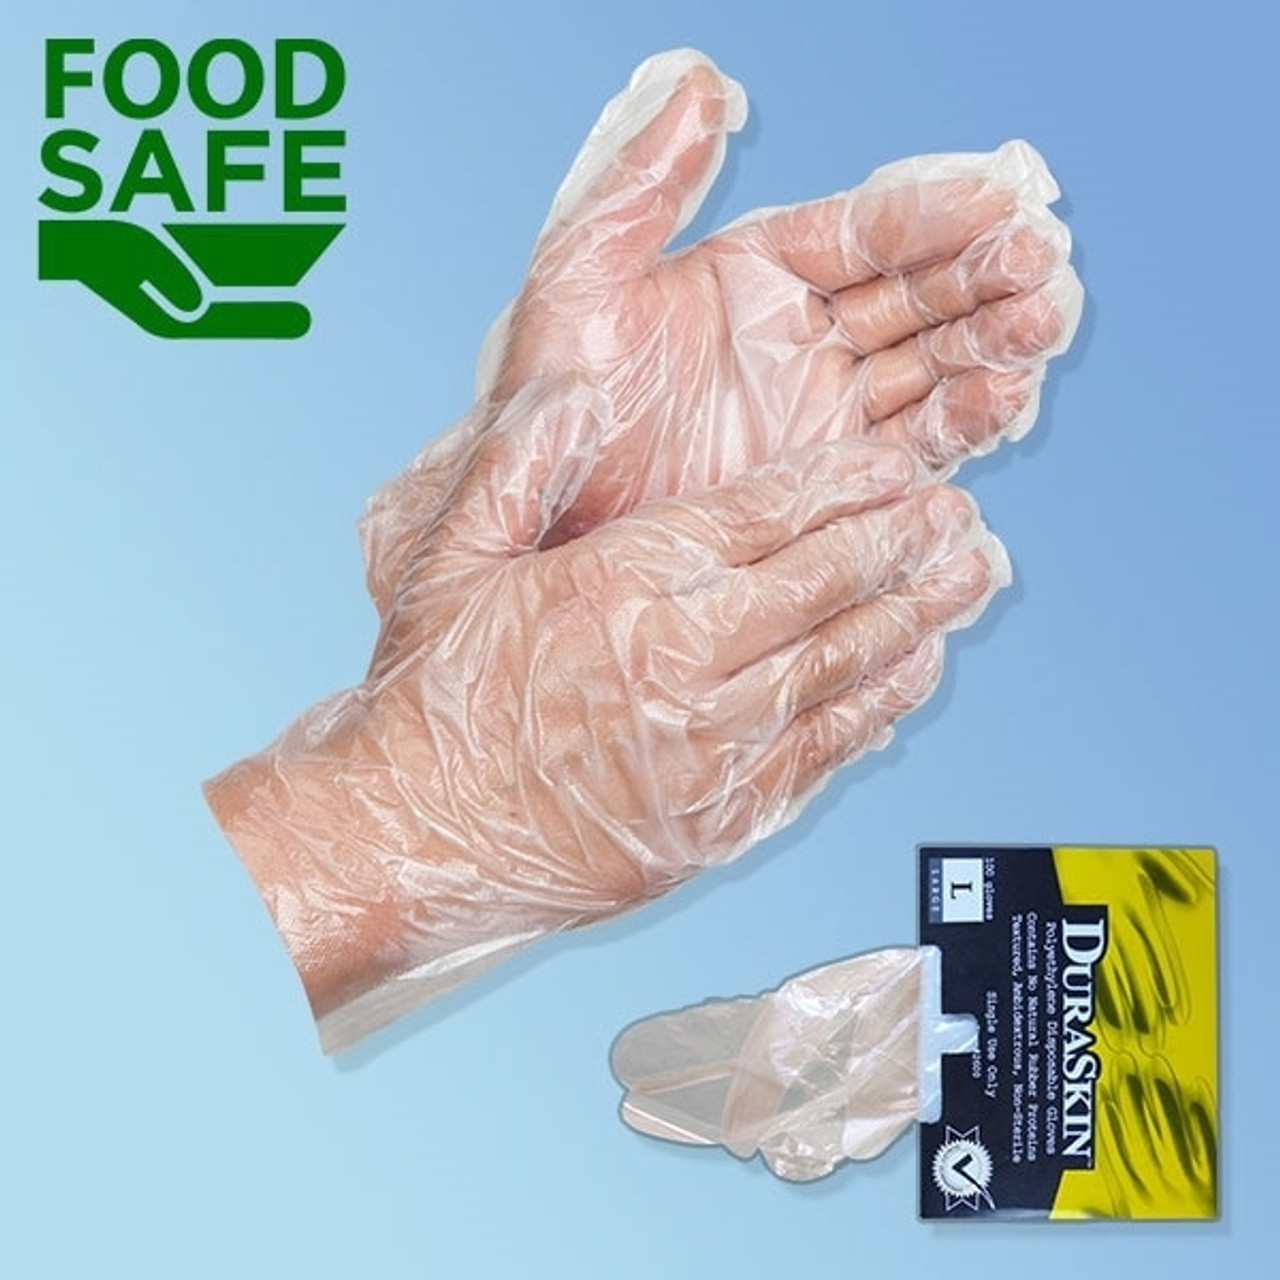 Disposable Food Service Gloves, 1 25 mil